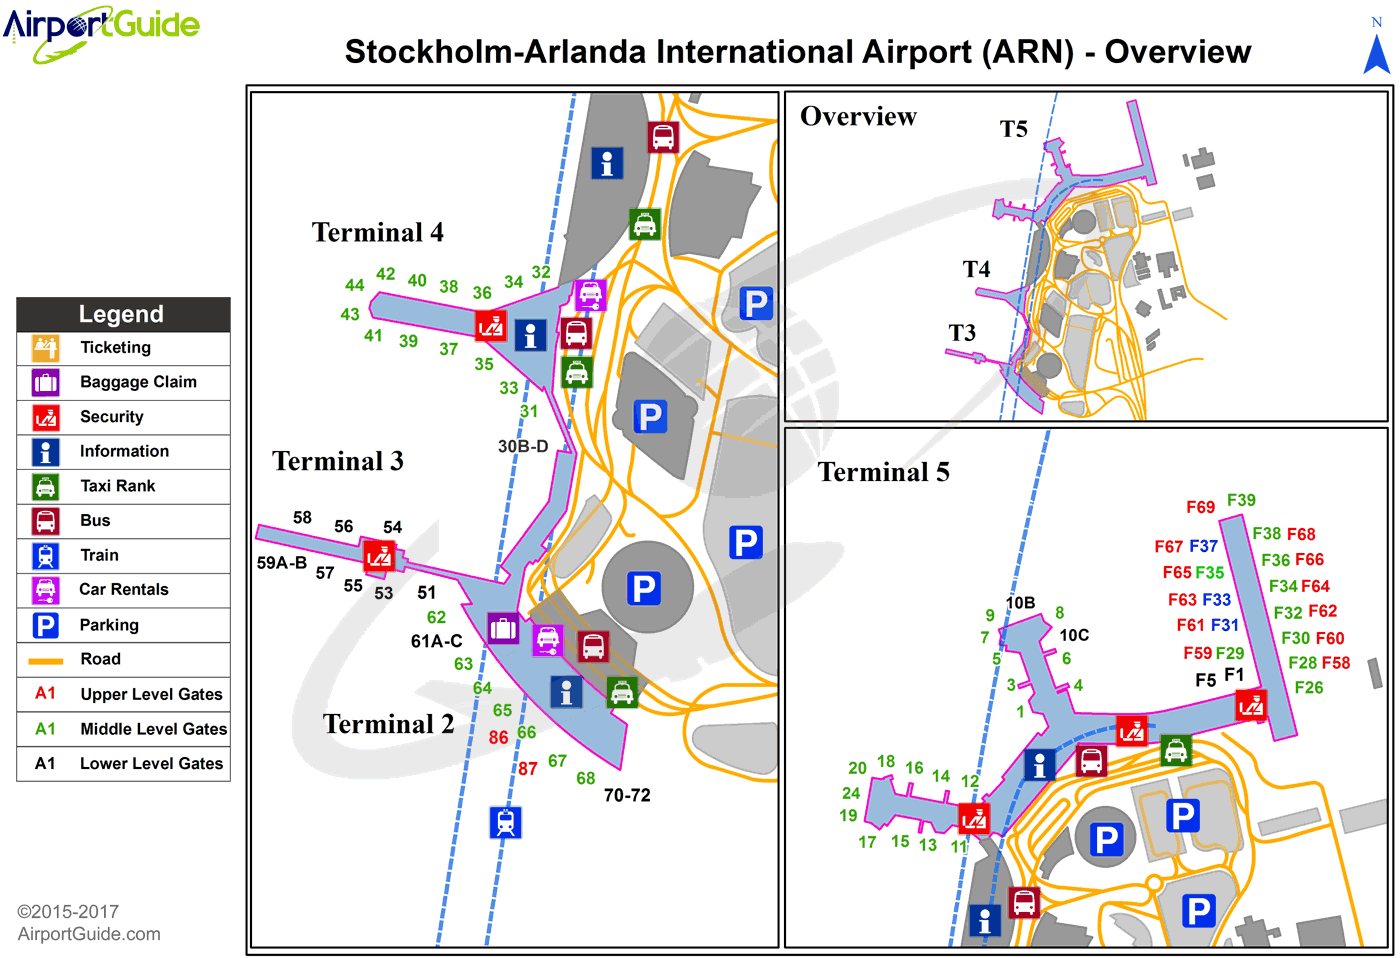 Stockholm - Stockholm-Arlanda (ARN) Airport Terminal Map - Overview